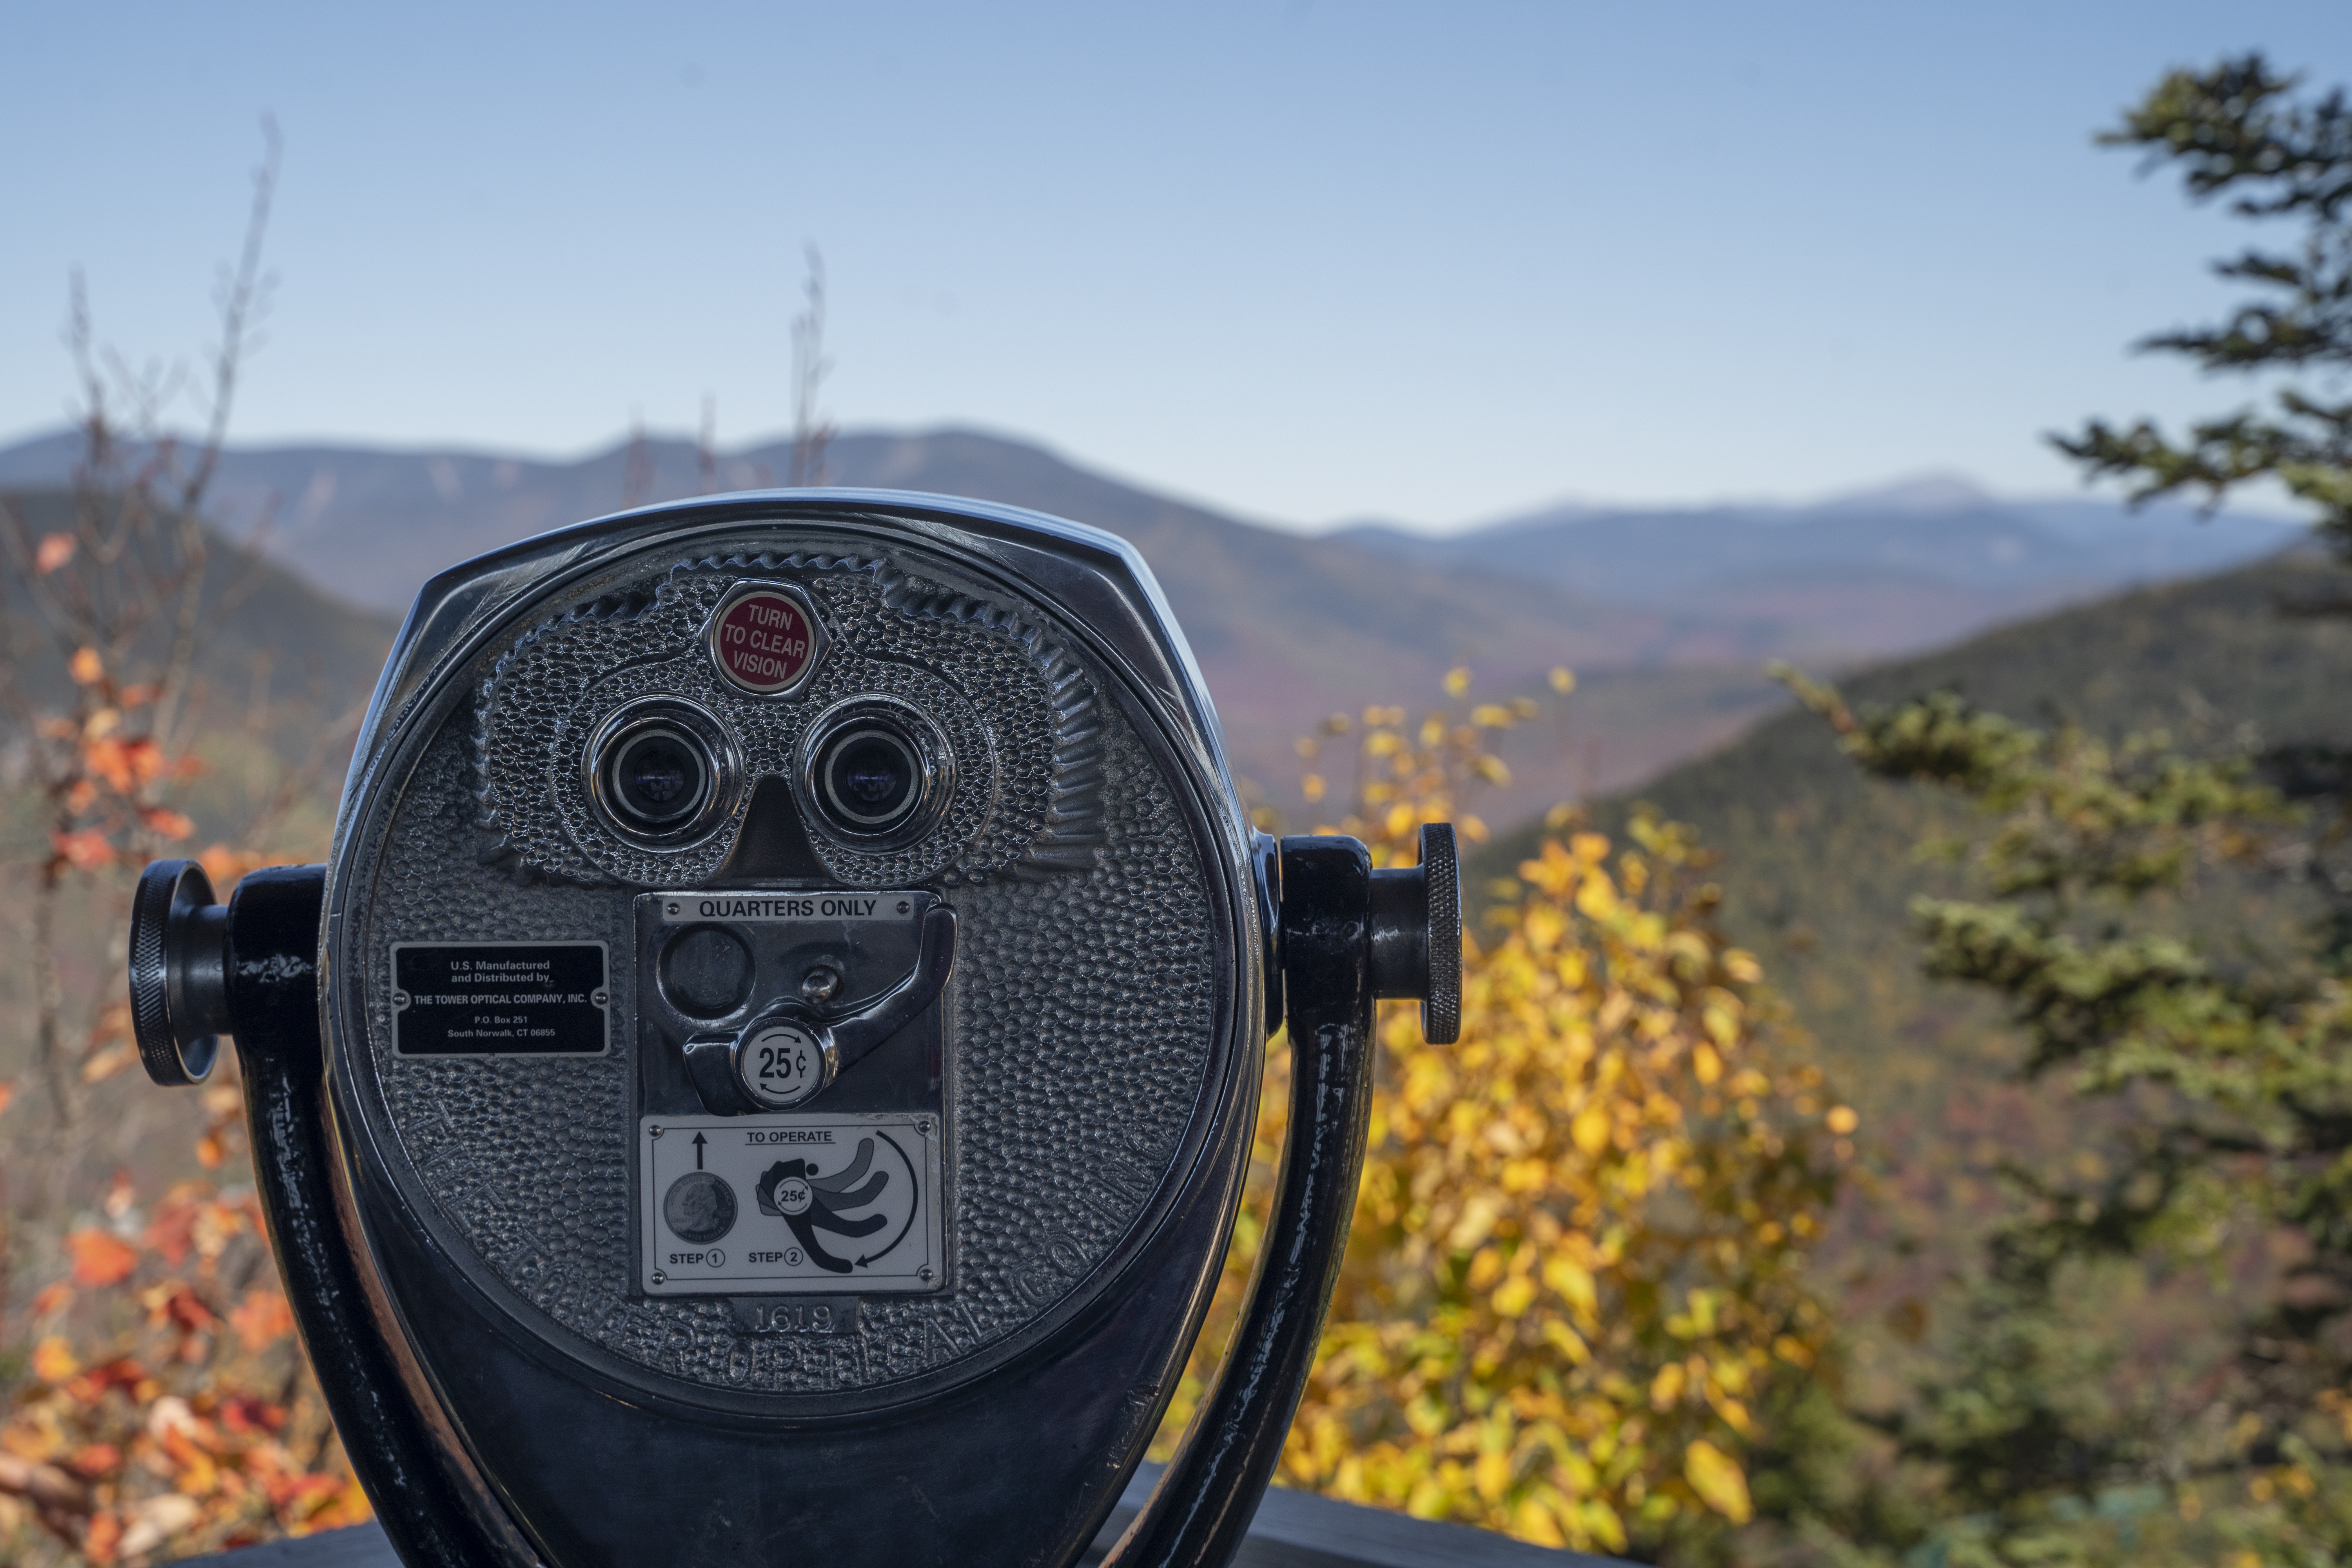 A photo of binoculars overlooking mountains with fall leaves.